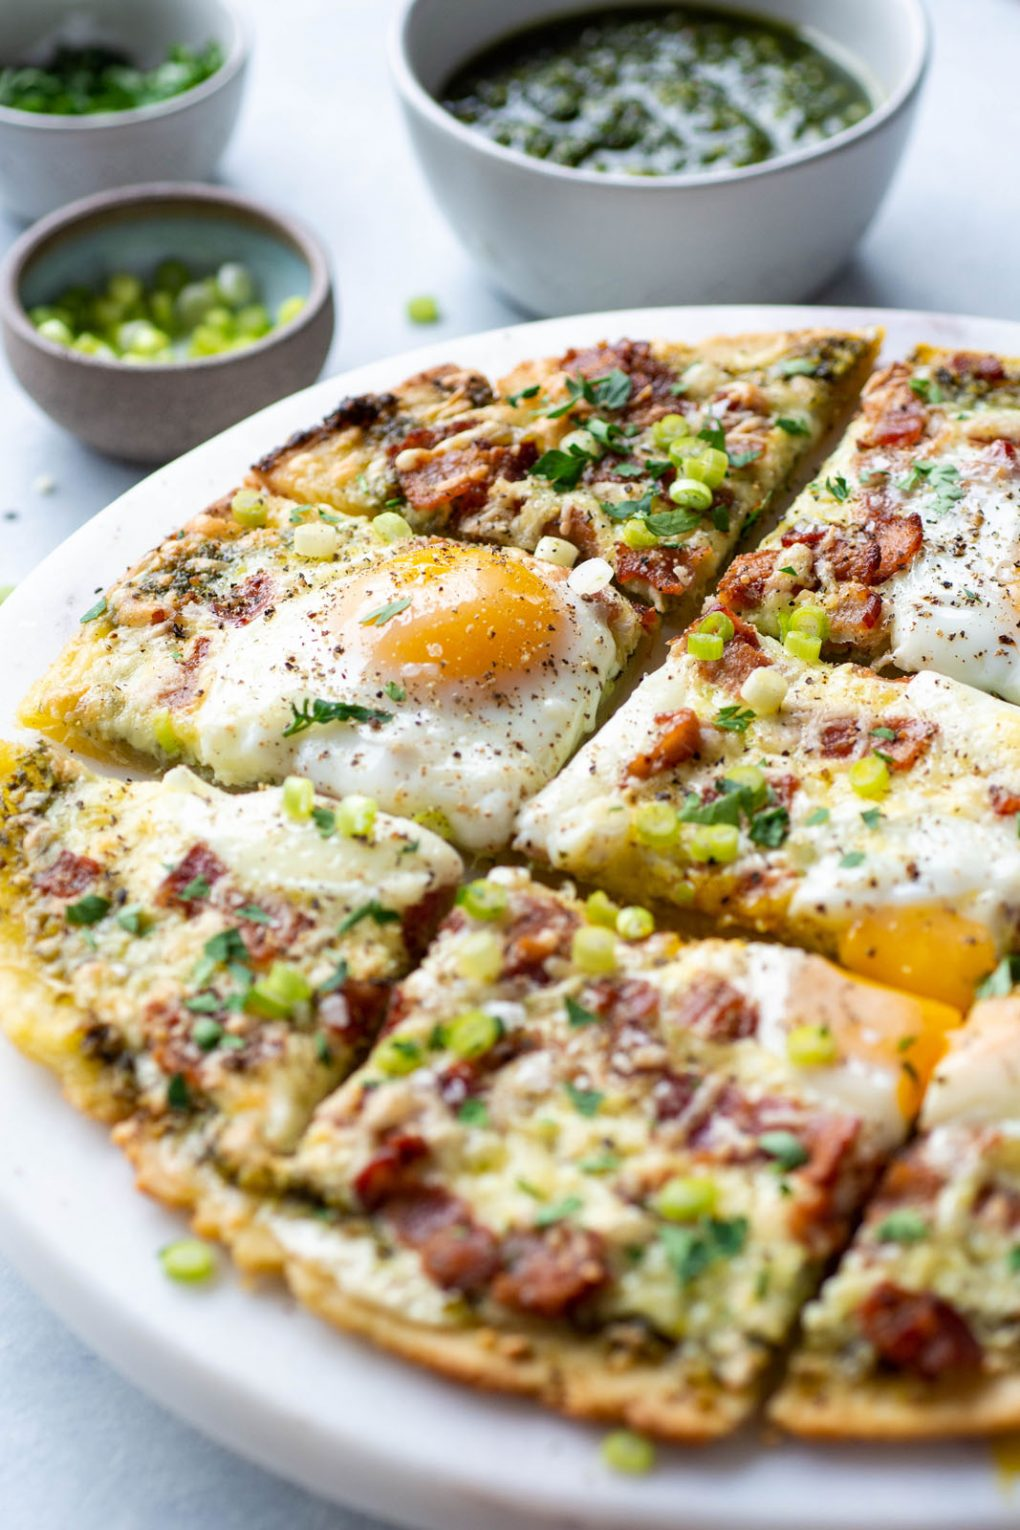 Side angle view of a breakfast pizza with melted cheese, crispy bacon, sunny side up eggs, and fresh herbs and green onions. On a light colored marble serving tray and a light background. Next to a small bowl of sliced green onions, and another small bowl of pesto.